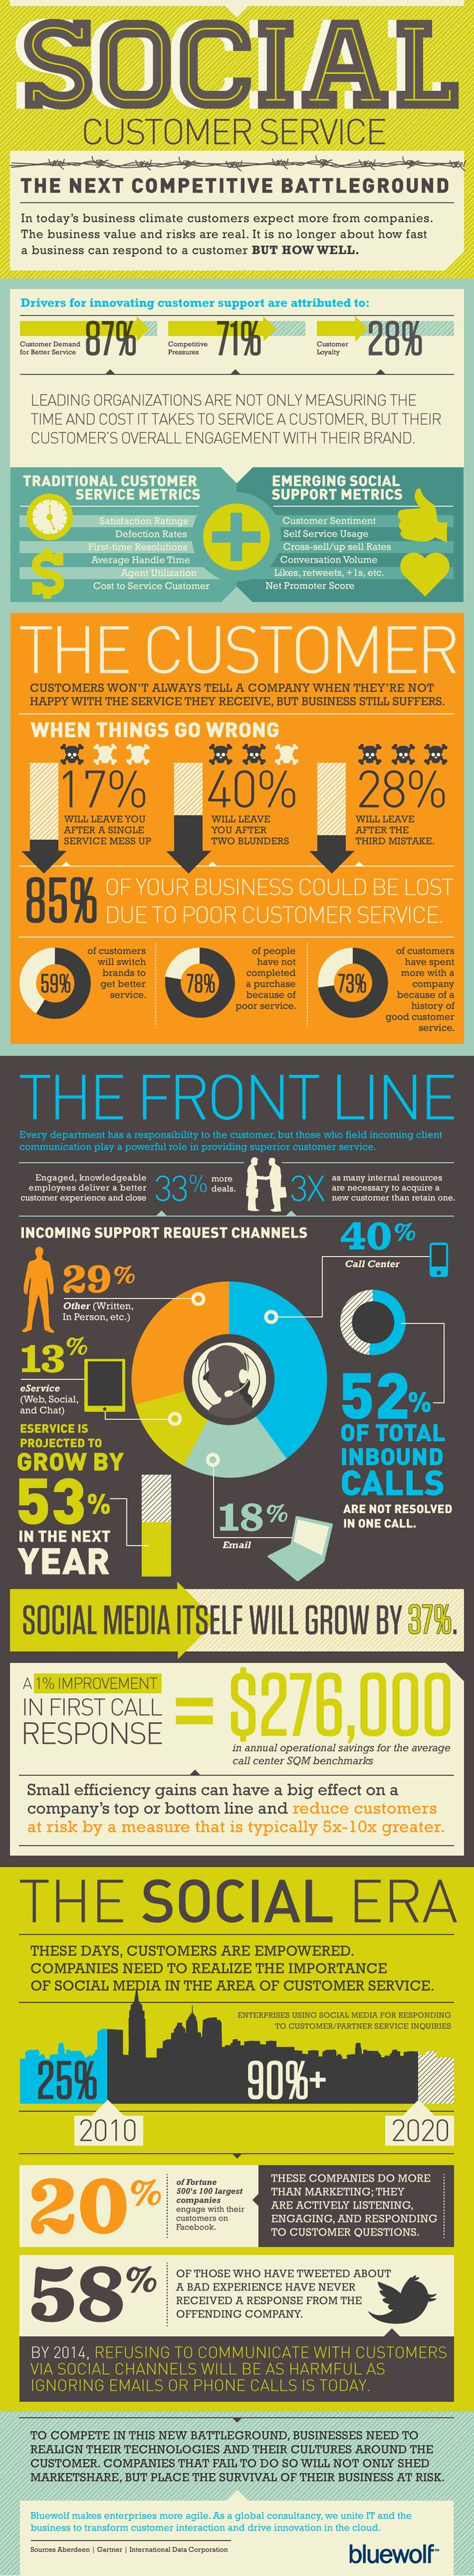 Customer service in social media - why it's important and how most companies are getting it wrong.